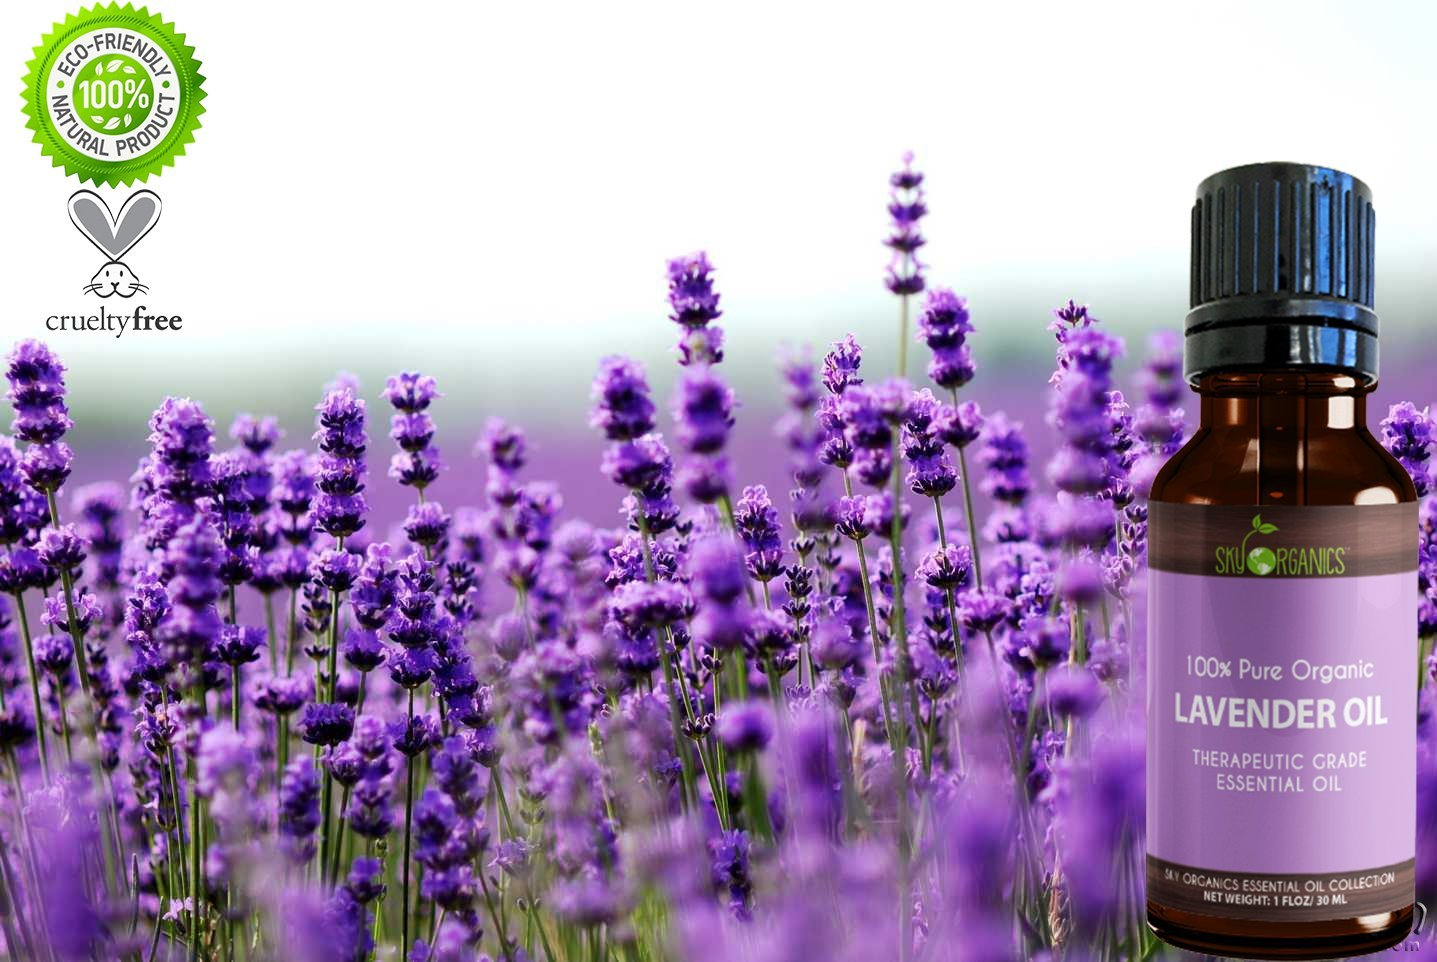 Best Lavender Essential Oil By Sky Organics-100% Organic, Pure Therapeutic French Lavender Oil For Diffuser, Aromatherapy, Headache, Pain, Meditation, Anxiety, Sleep-Perfect For Candles & Massage 1oz by Sky Organics (Image #3)